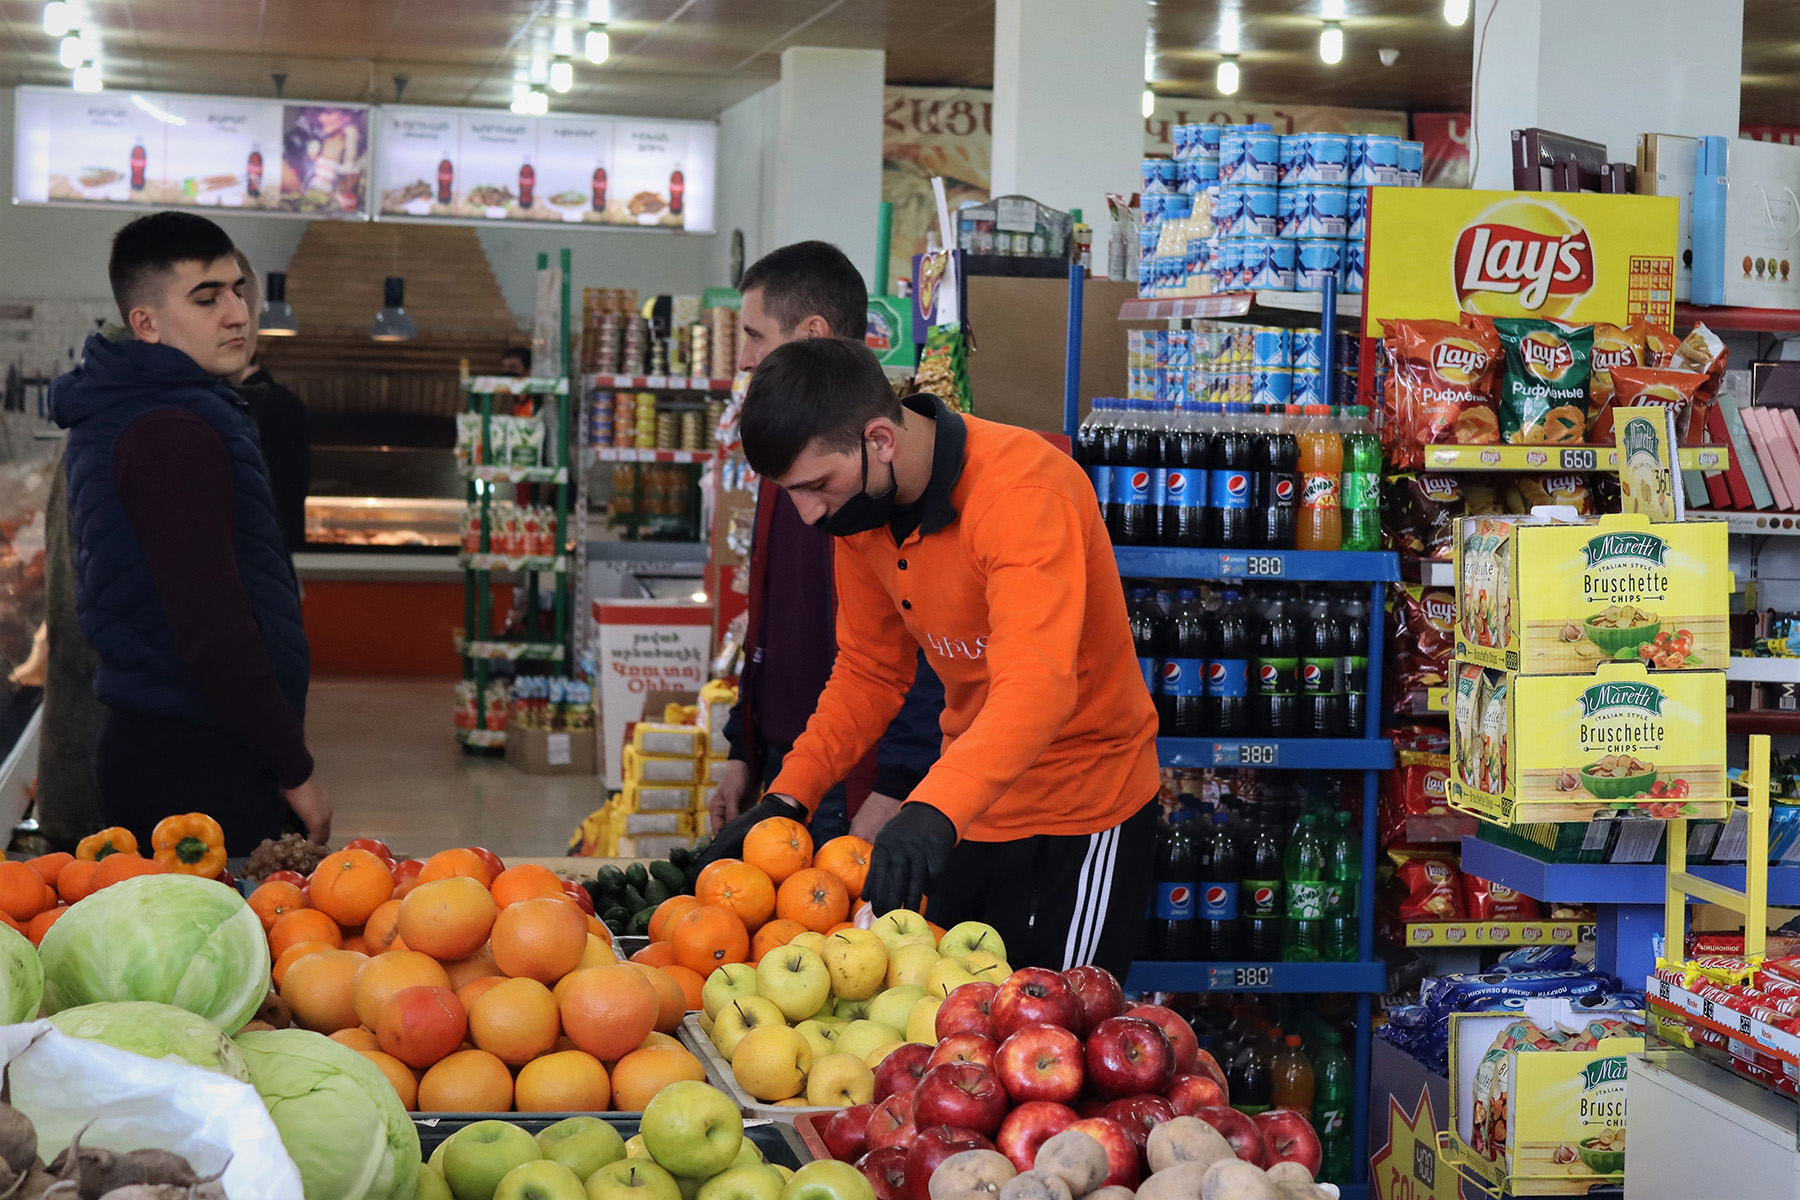 A supermarket in Gyumri. Photo: Anahit Harutyunyan/OC Media.